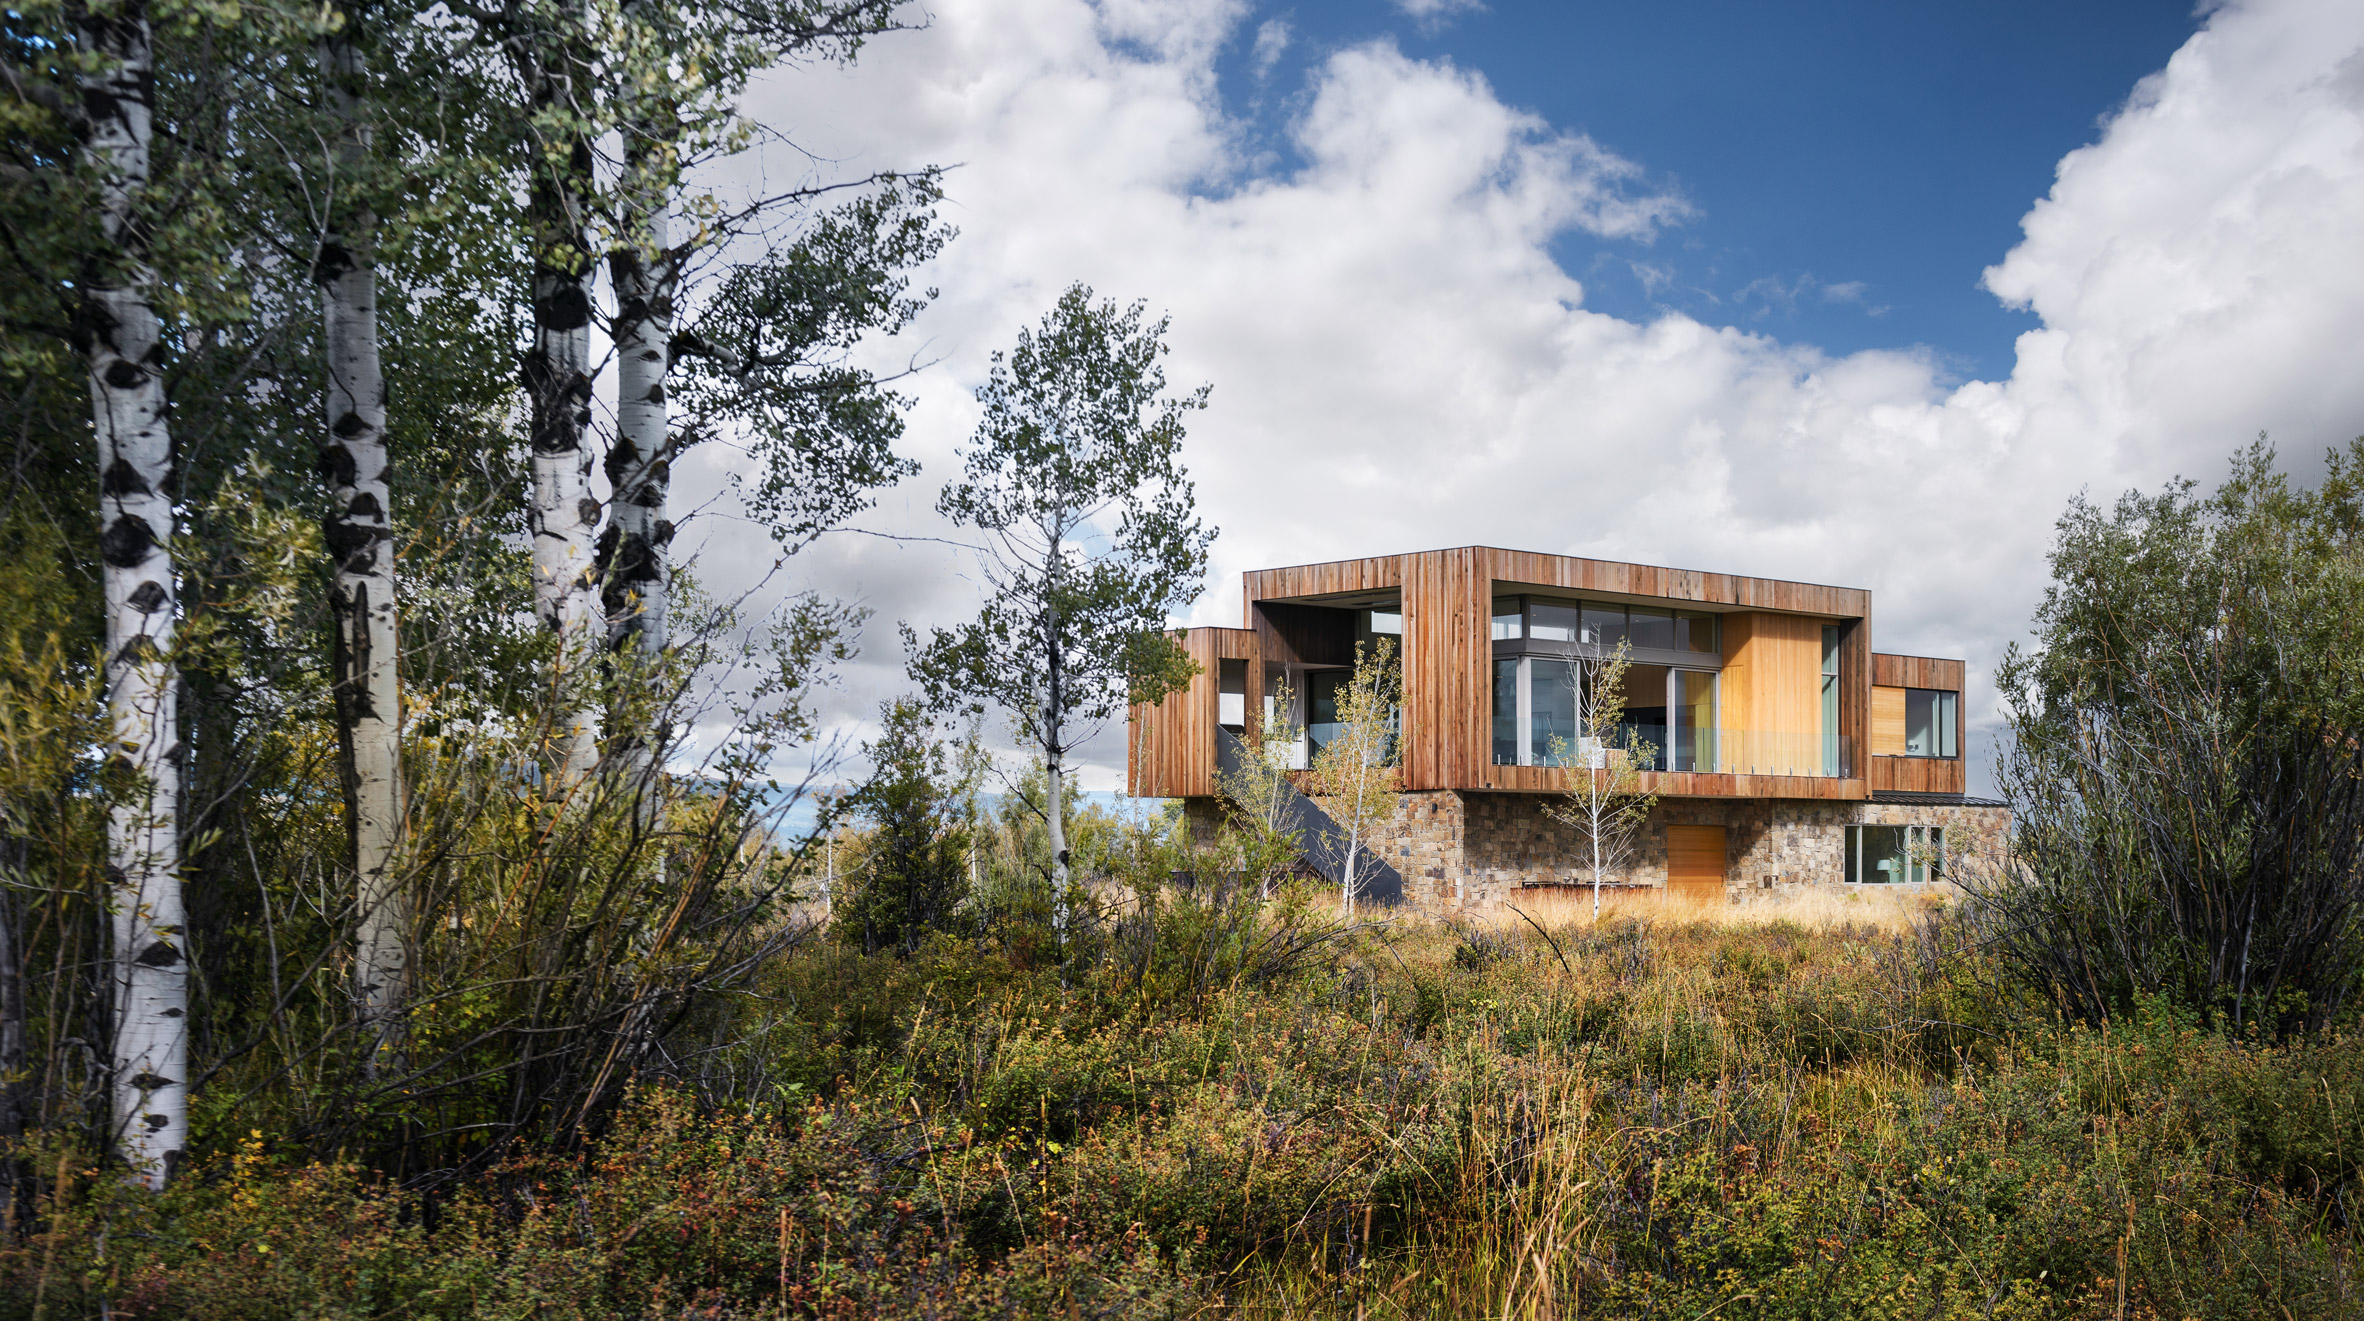 Ro Rockett Design lifts Teton Valley Residence on stone walls